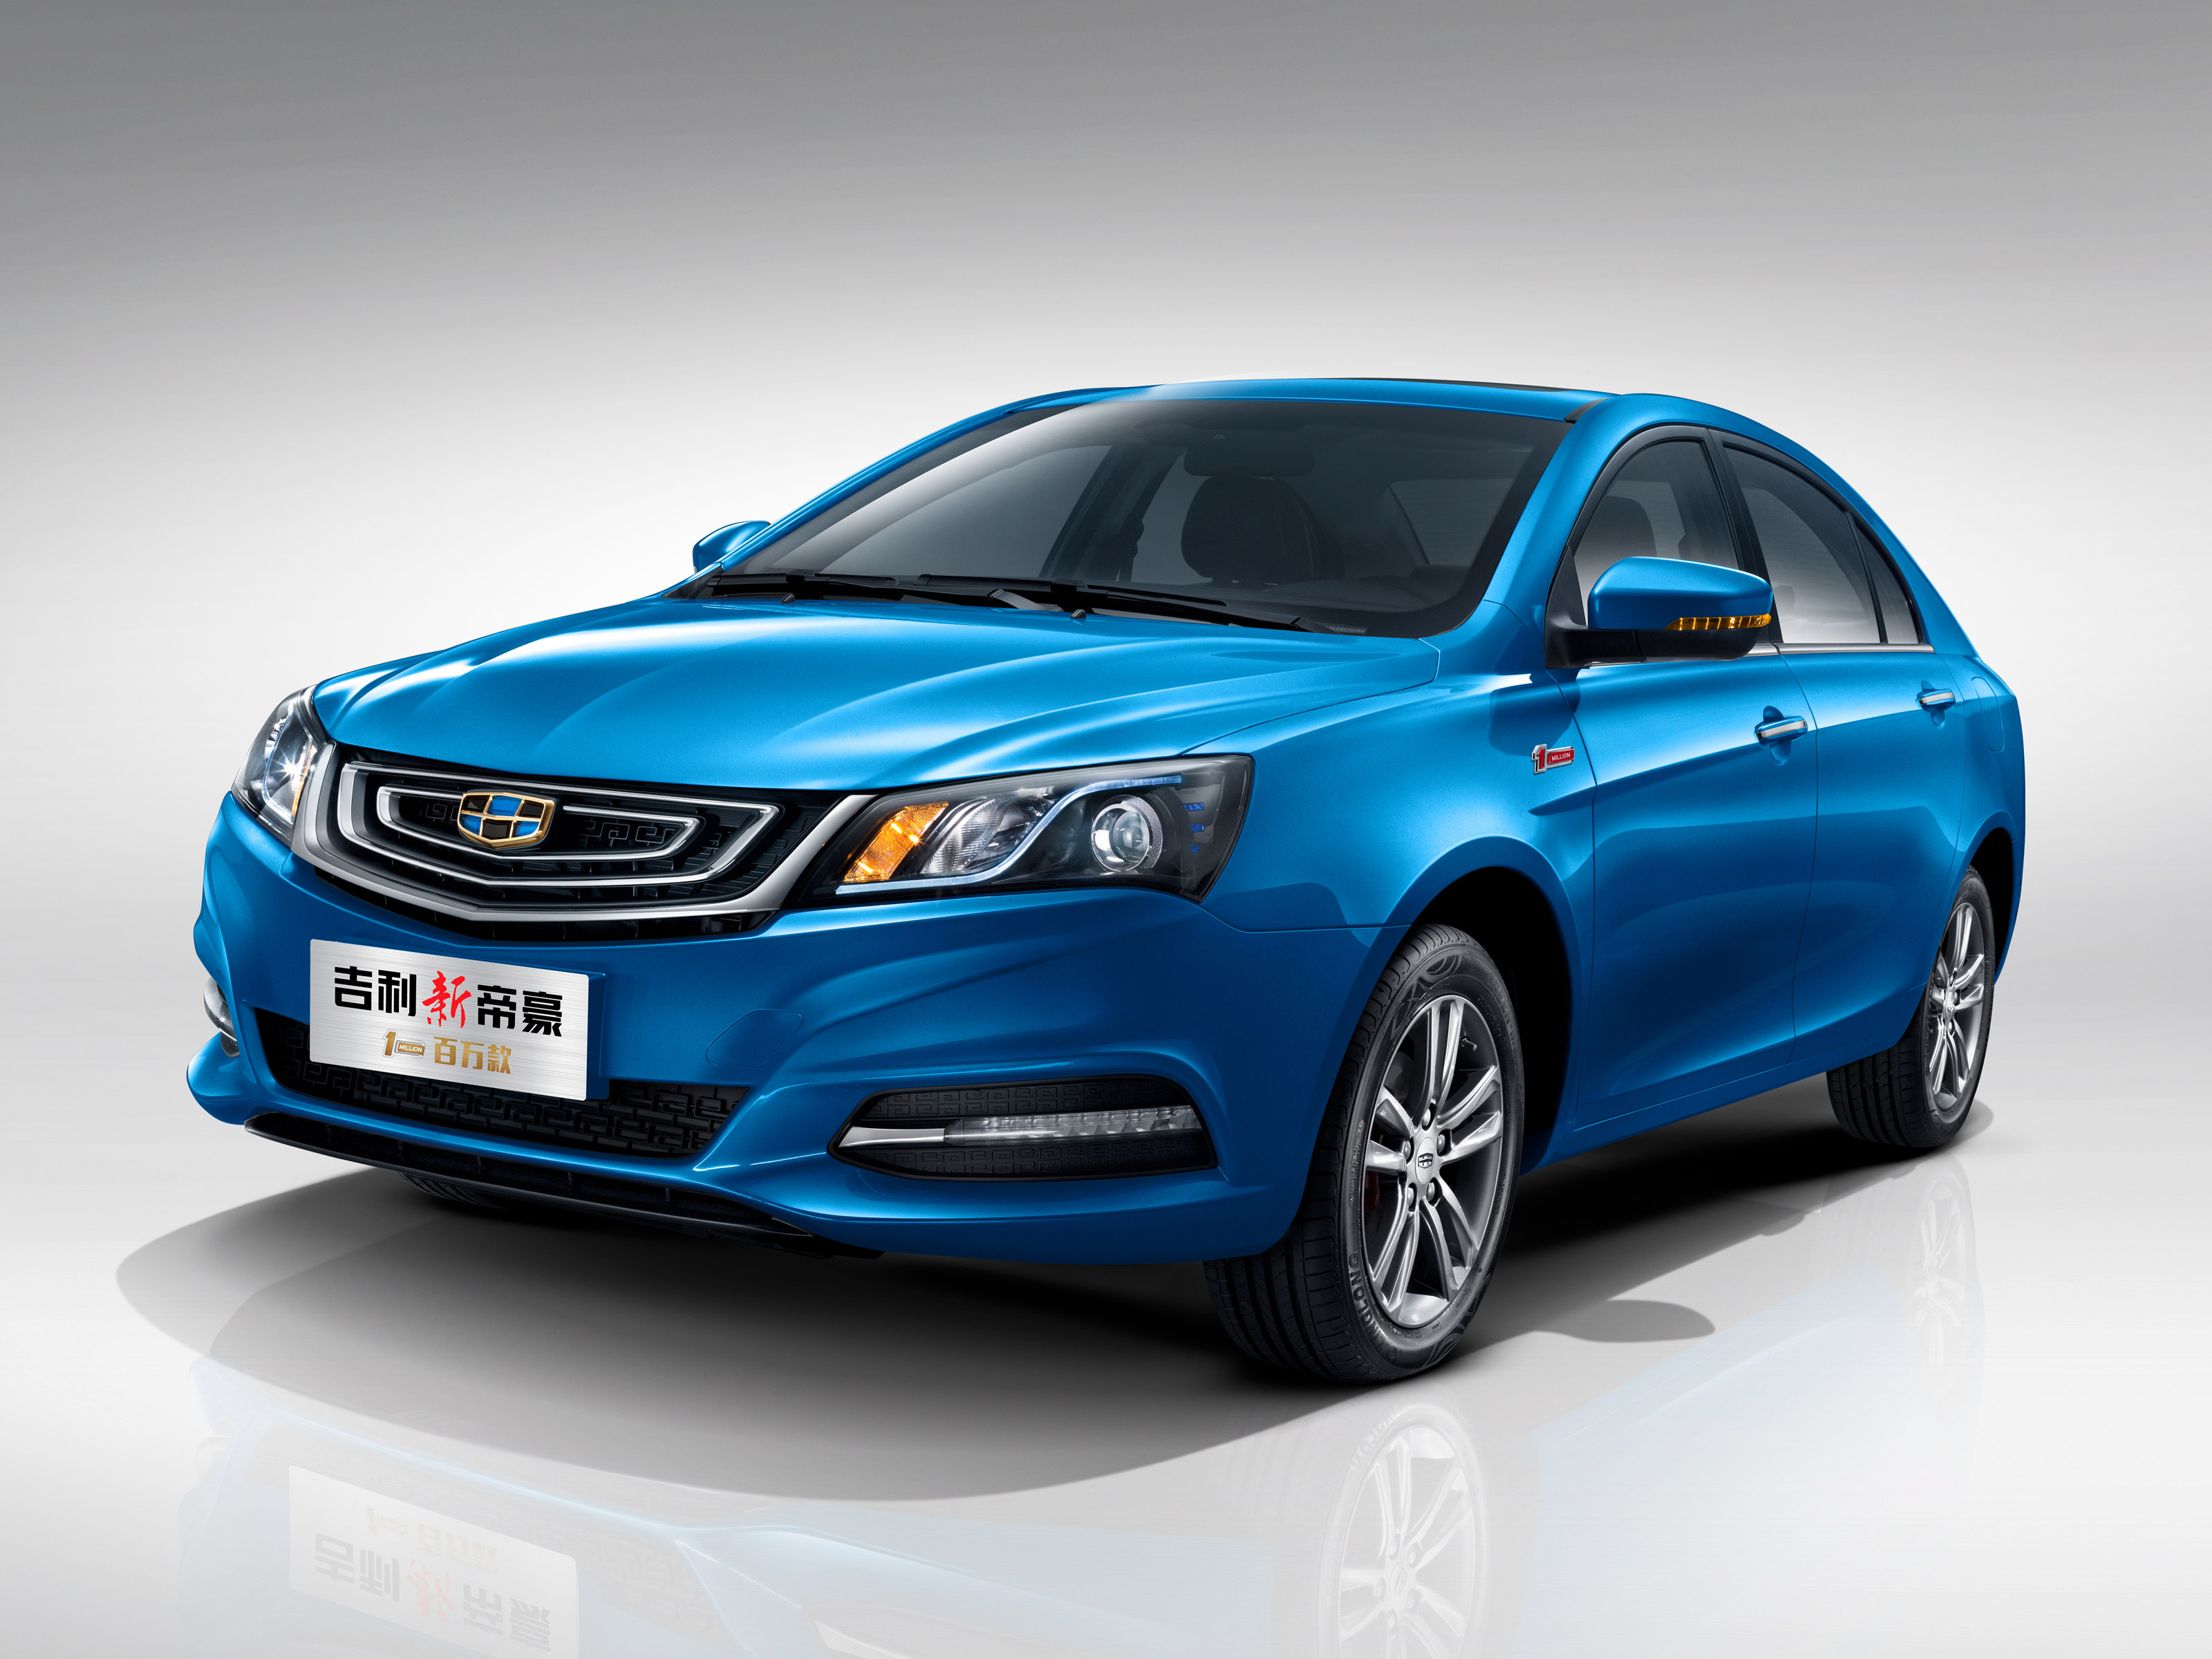 Geely Emgrand 7 (EC7) hd photo